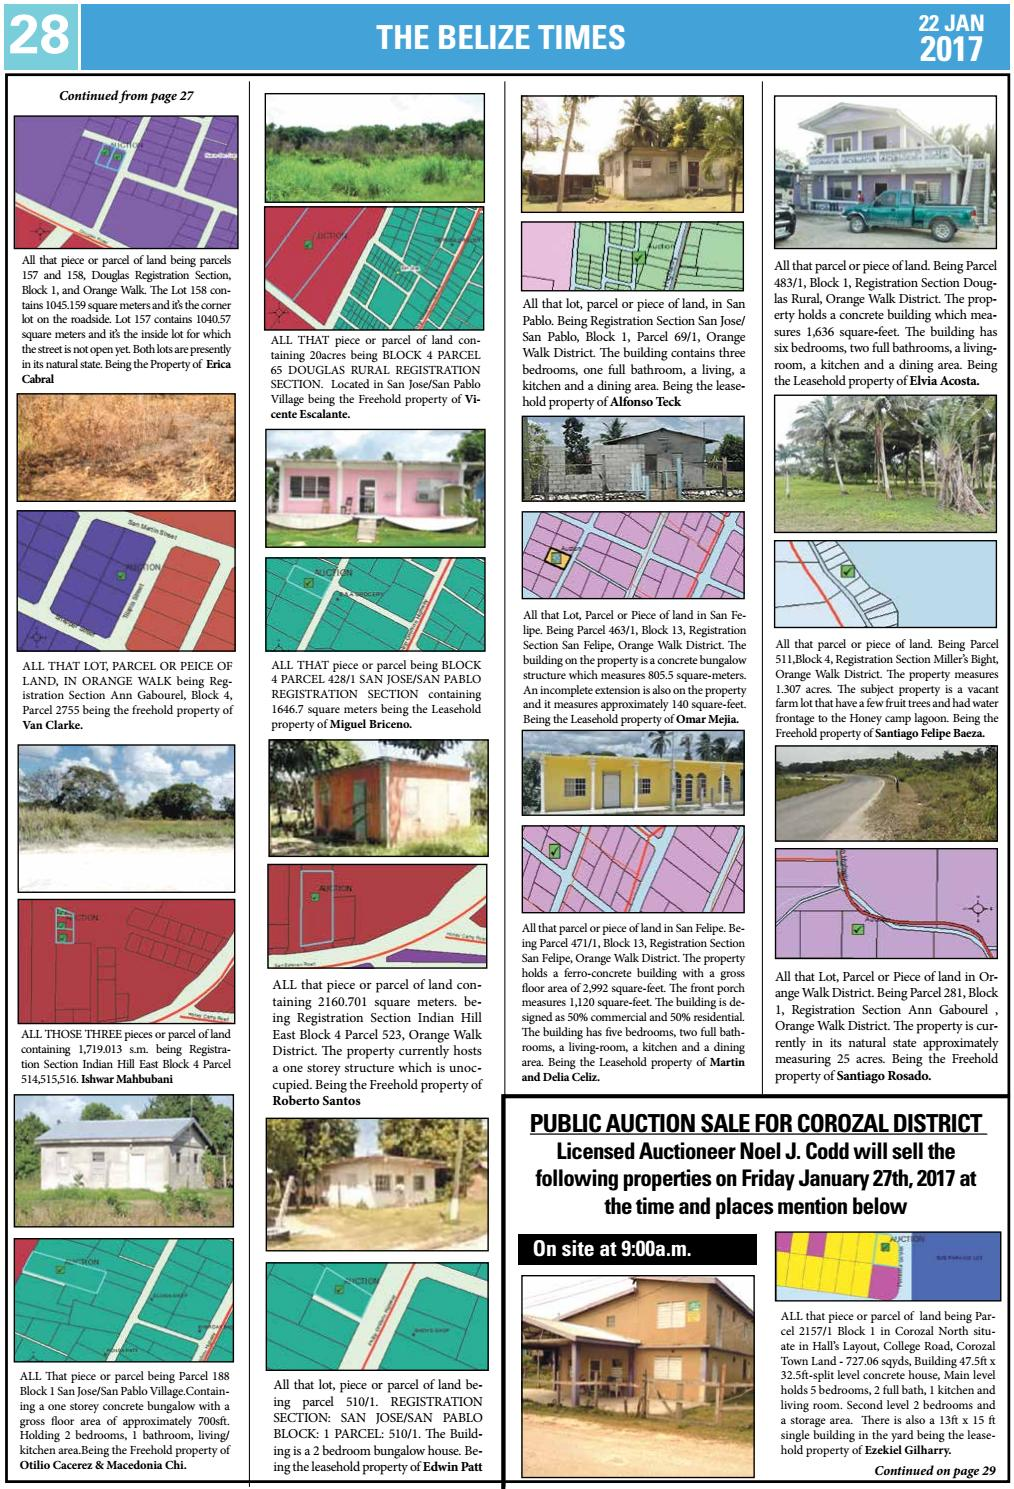 Belize Times January 22 2017 By Belize Times Press Issuu